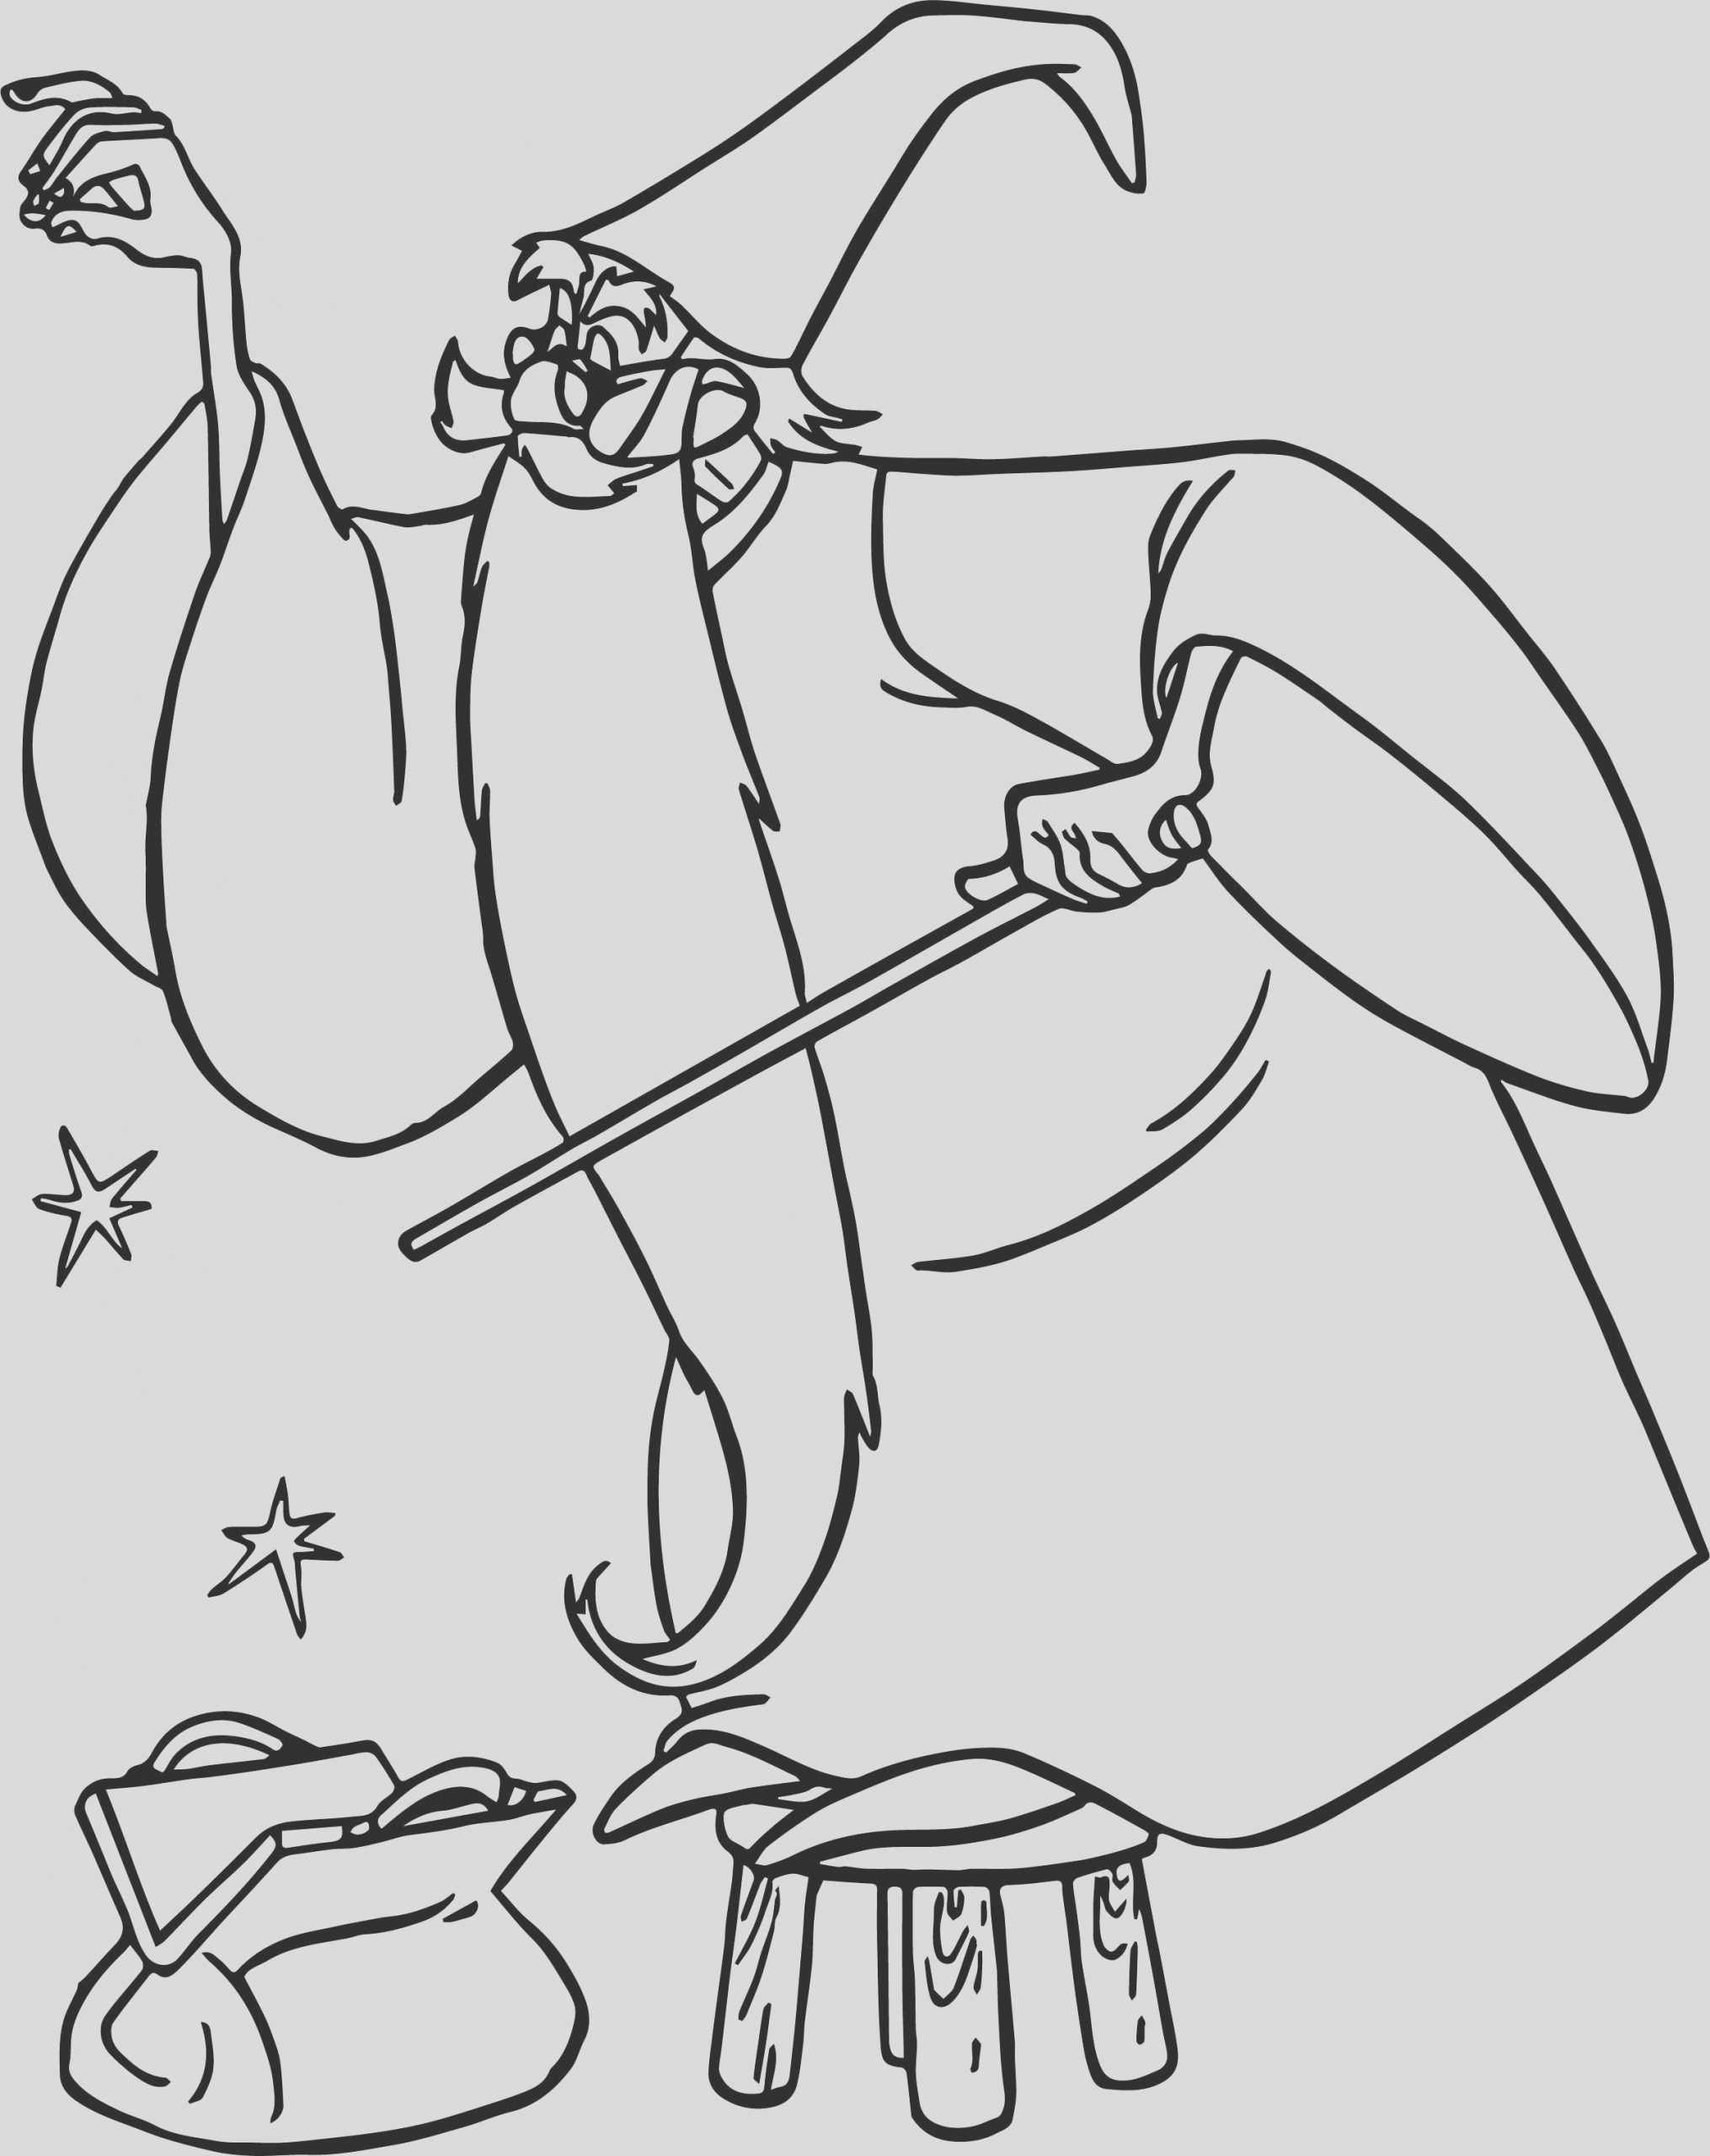 merlin magic coloring page